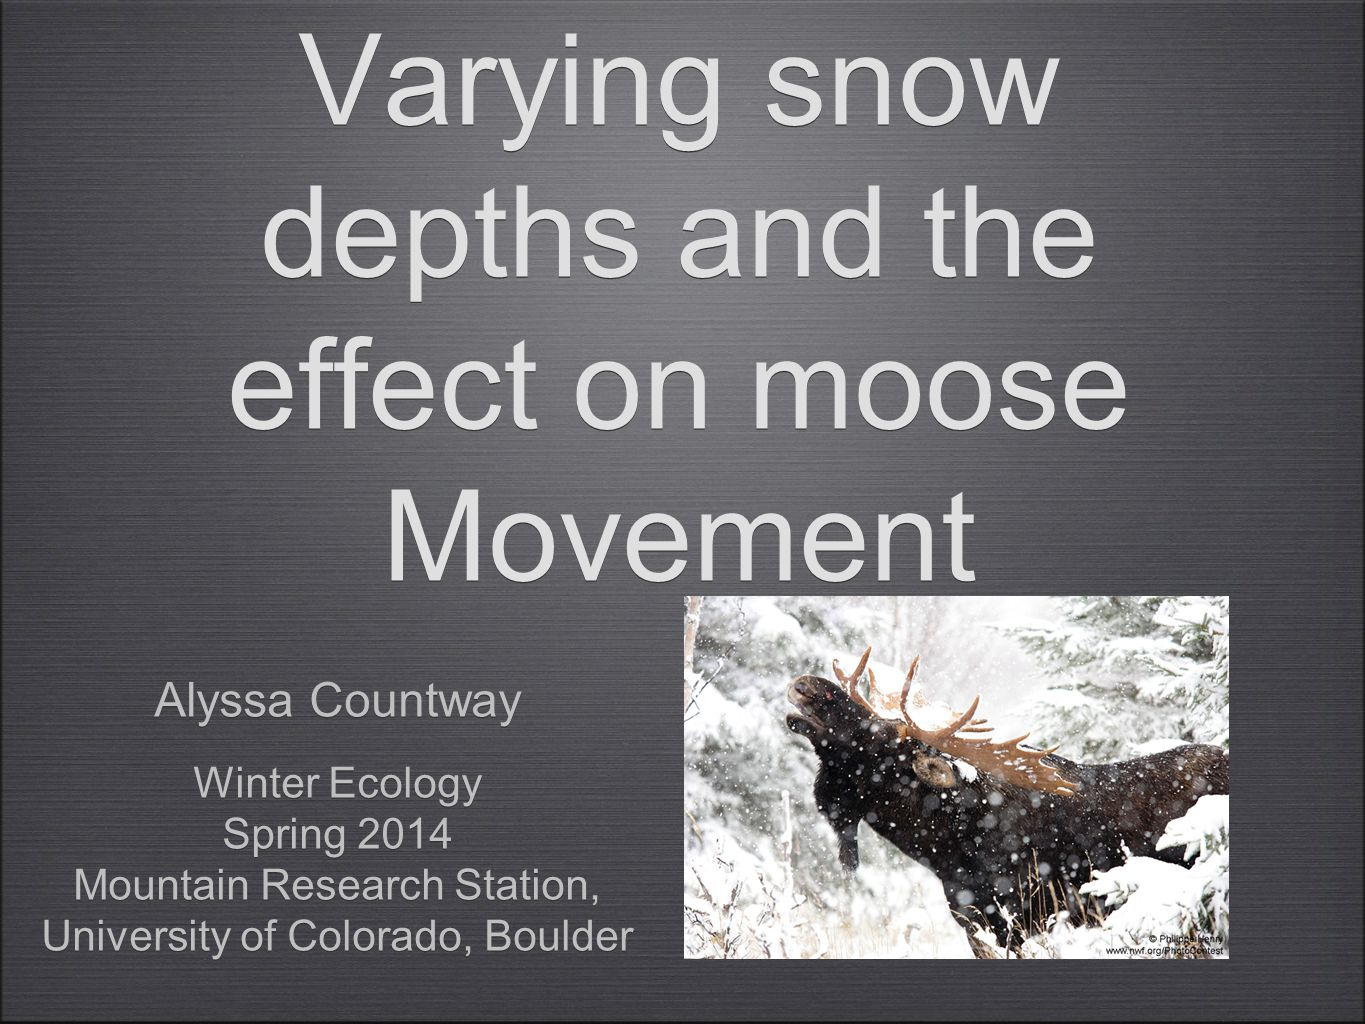 Varying snow depths and the effect on moose Movement Alyssa Countway Winter Ecology Spring 2014 Mountain Research Station, University of Colorado, Boulder Alyssa Countway Winter Ecology Spring 2014 Mountain Research Station, University of Colorado, Boulder